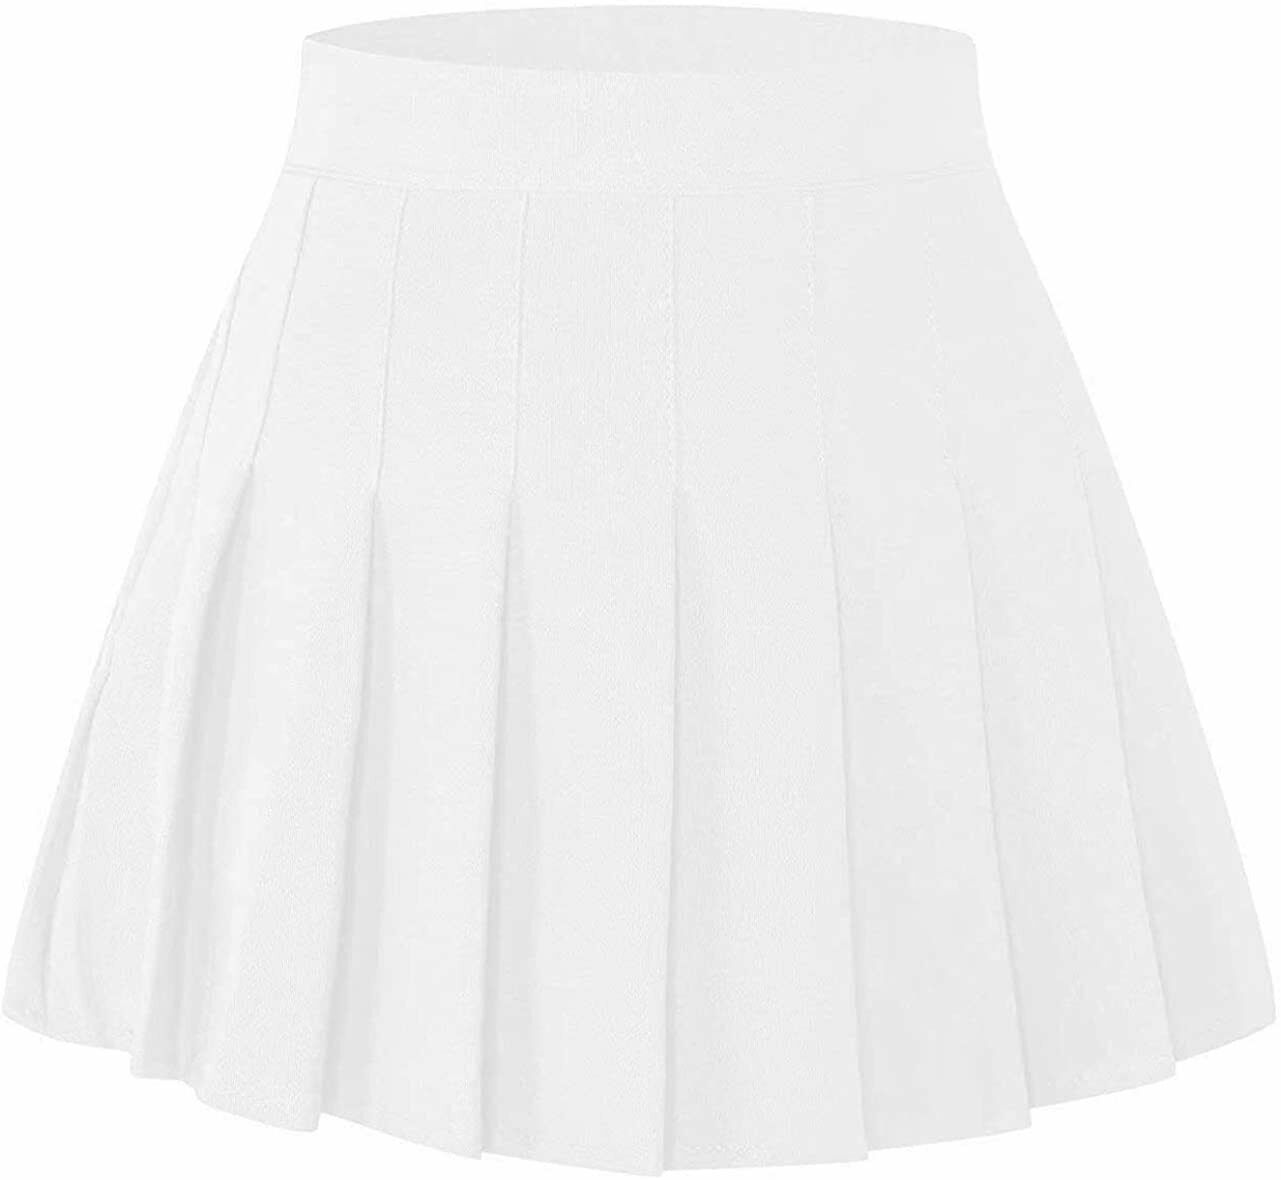 2 Years Adult XL SANGTREE Girls /& Womens Pleated Skirt with Comfy Stretchy Band